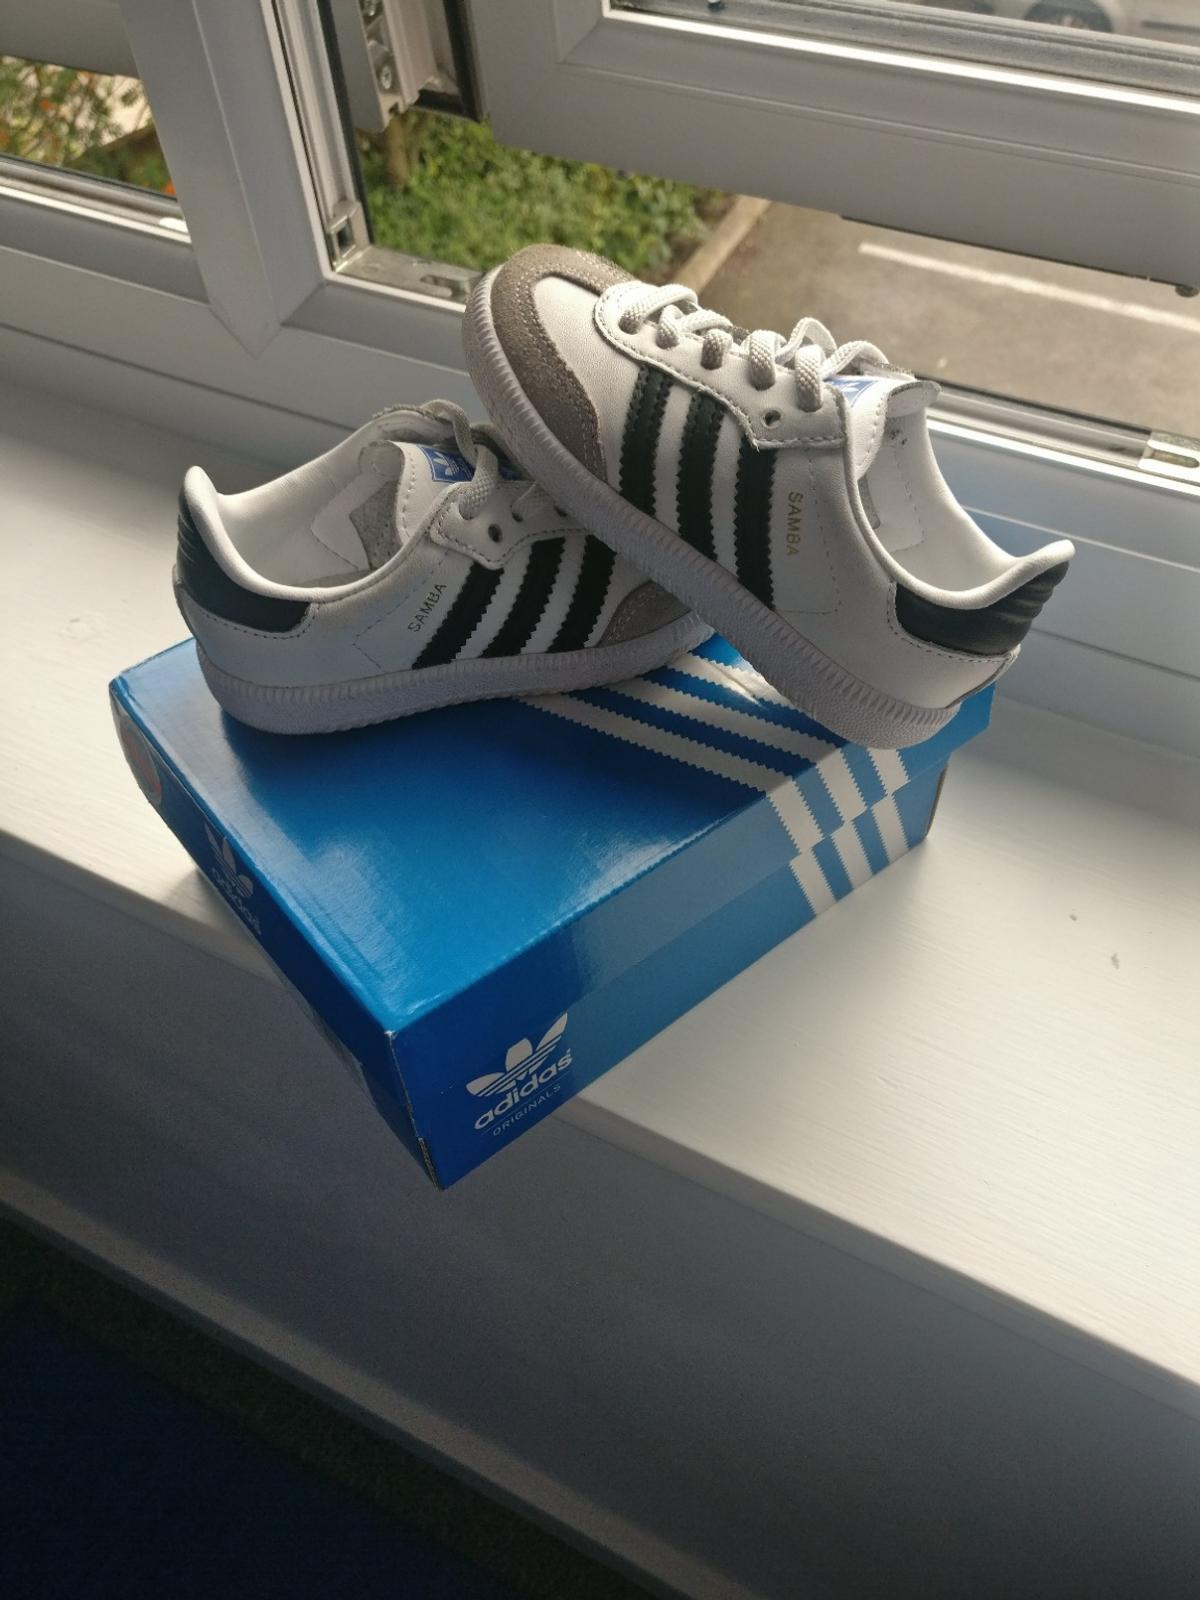 cheapest official images great fit Adidas samba in L8 Liverpool für £ 10,00 zum Verkauf | Shpock AT